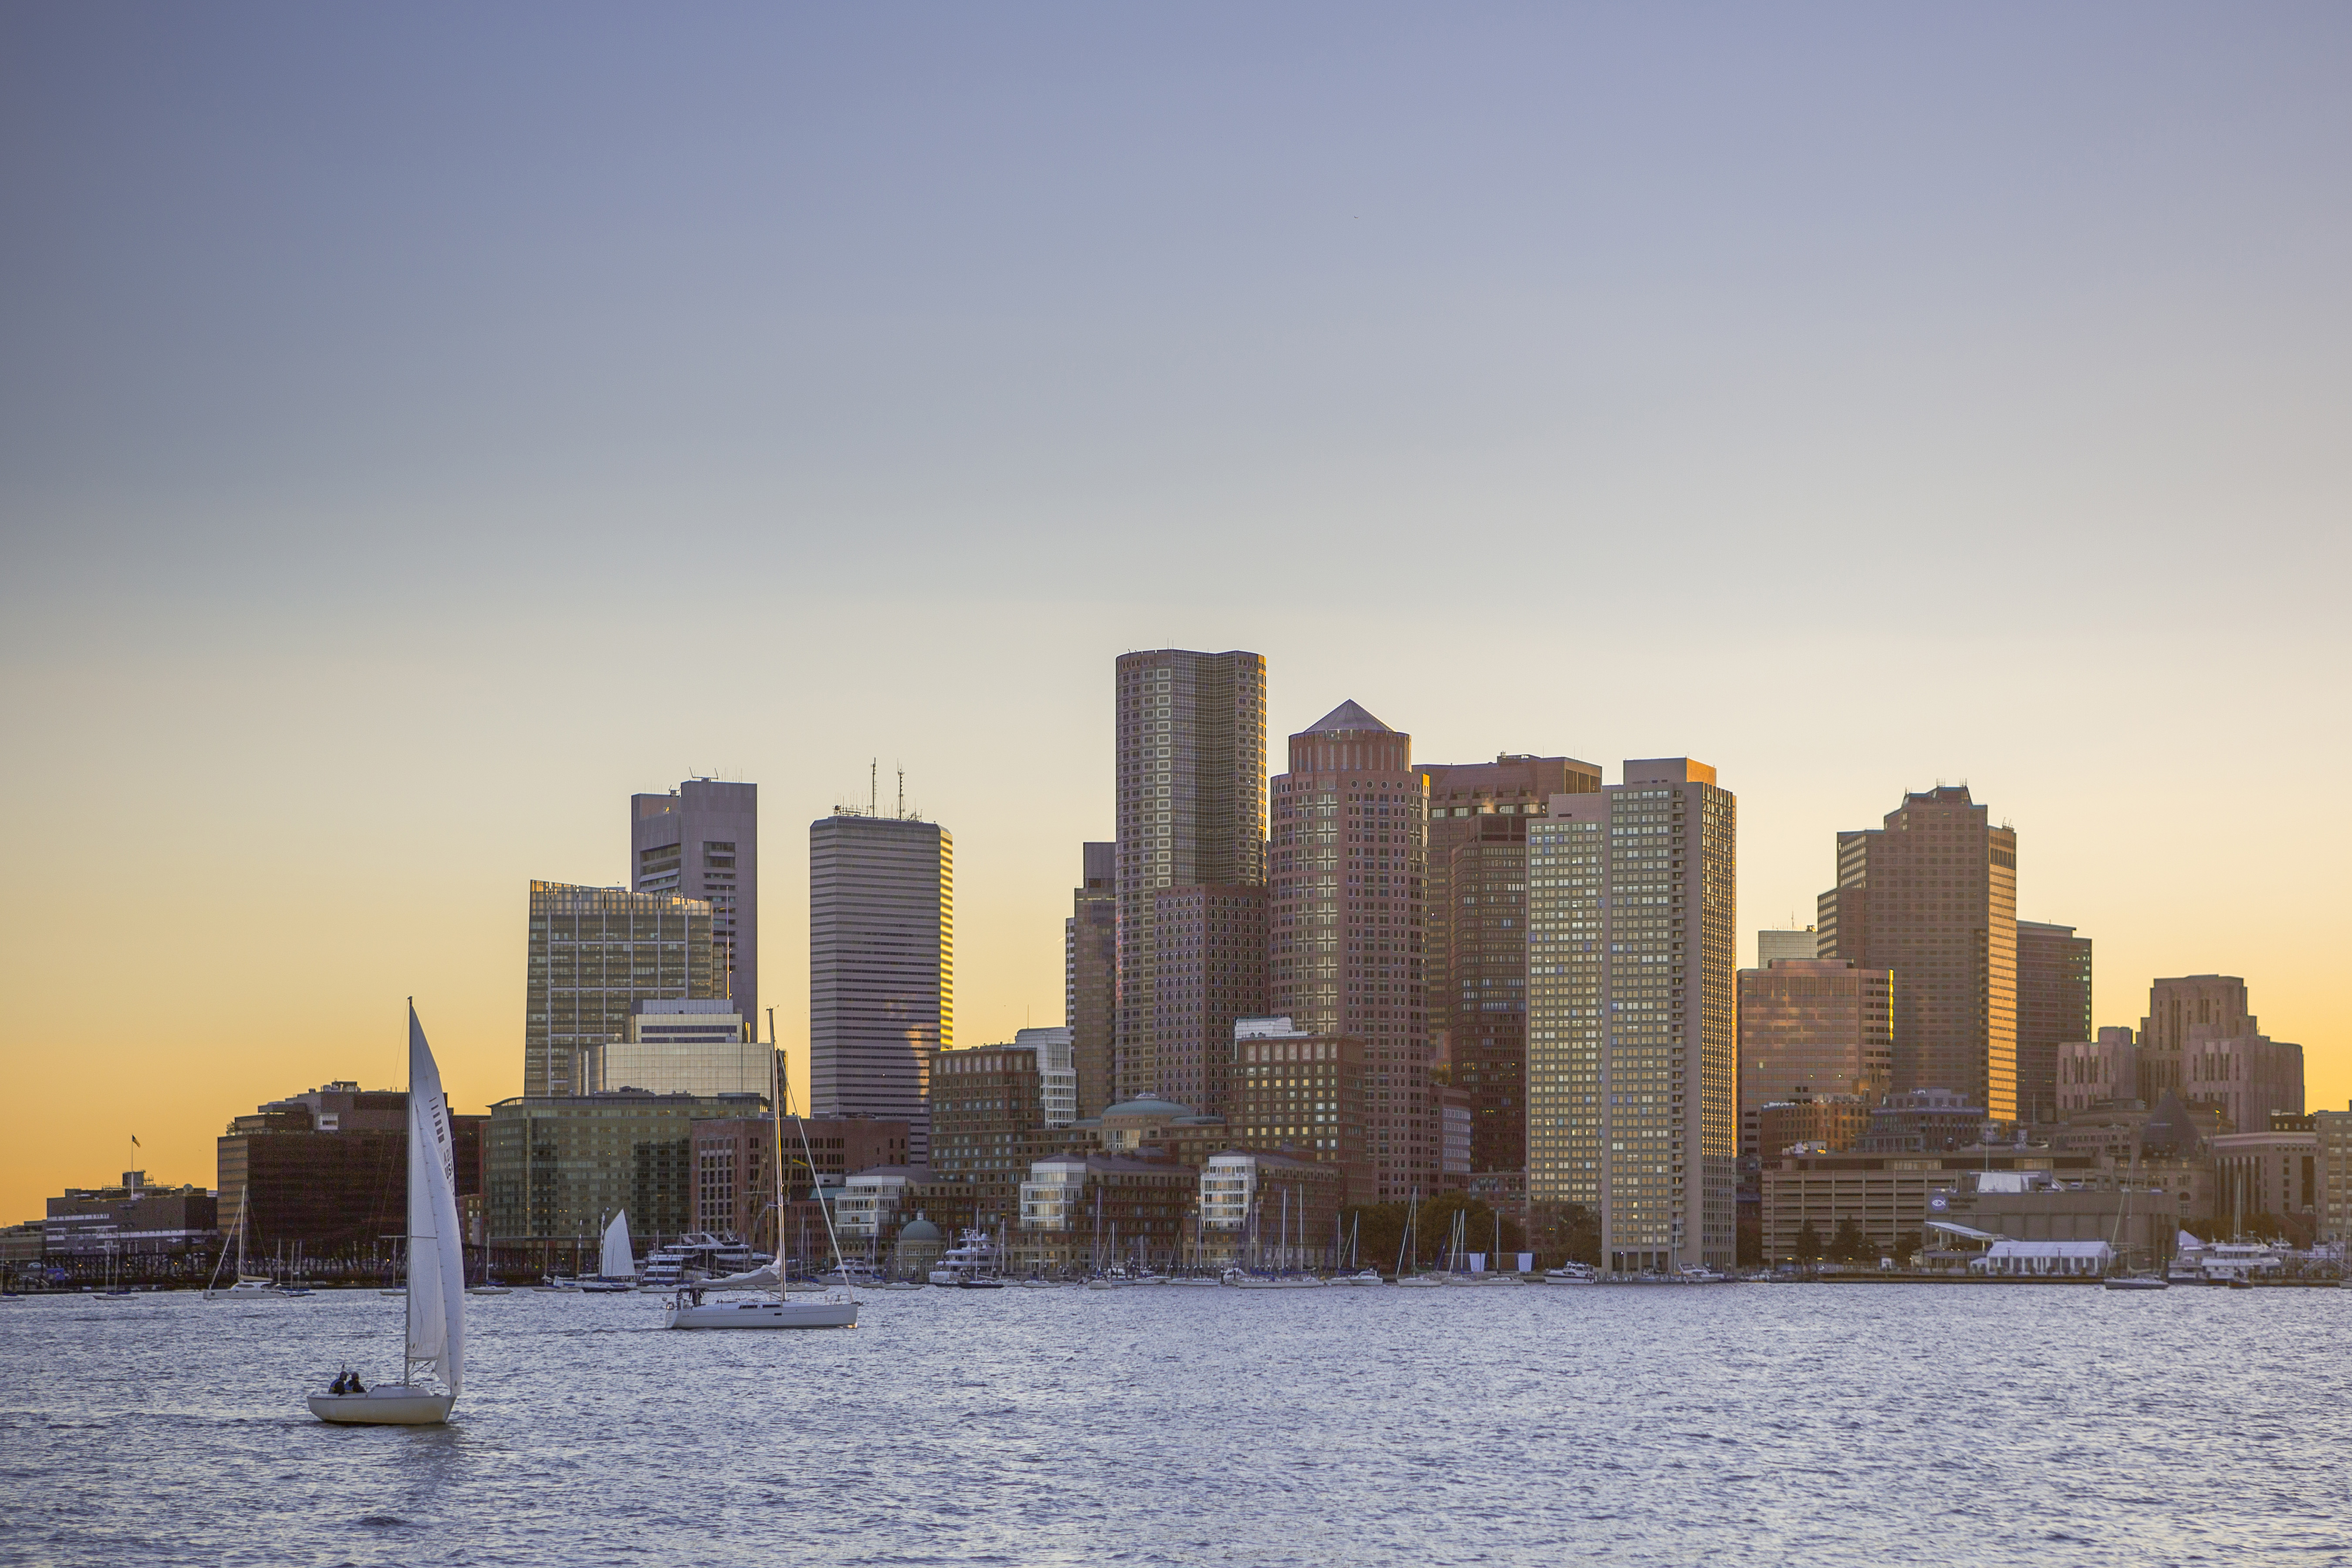 USA, Massachusetts, View of Boston City at sunset. (Photo by: JTB/UIG via Getty Images)